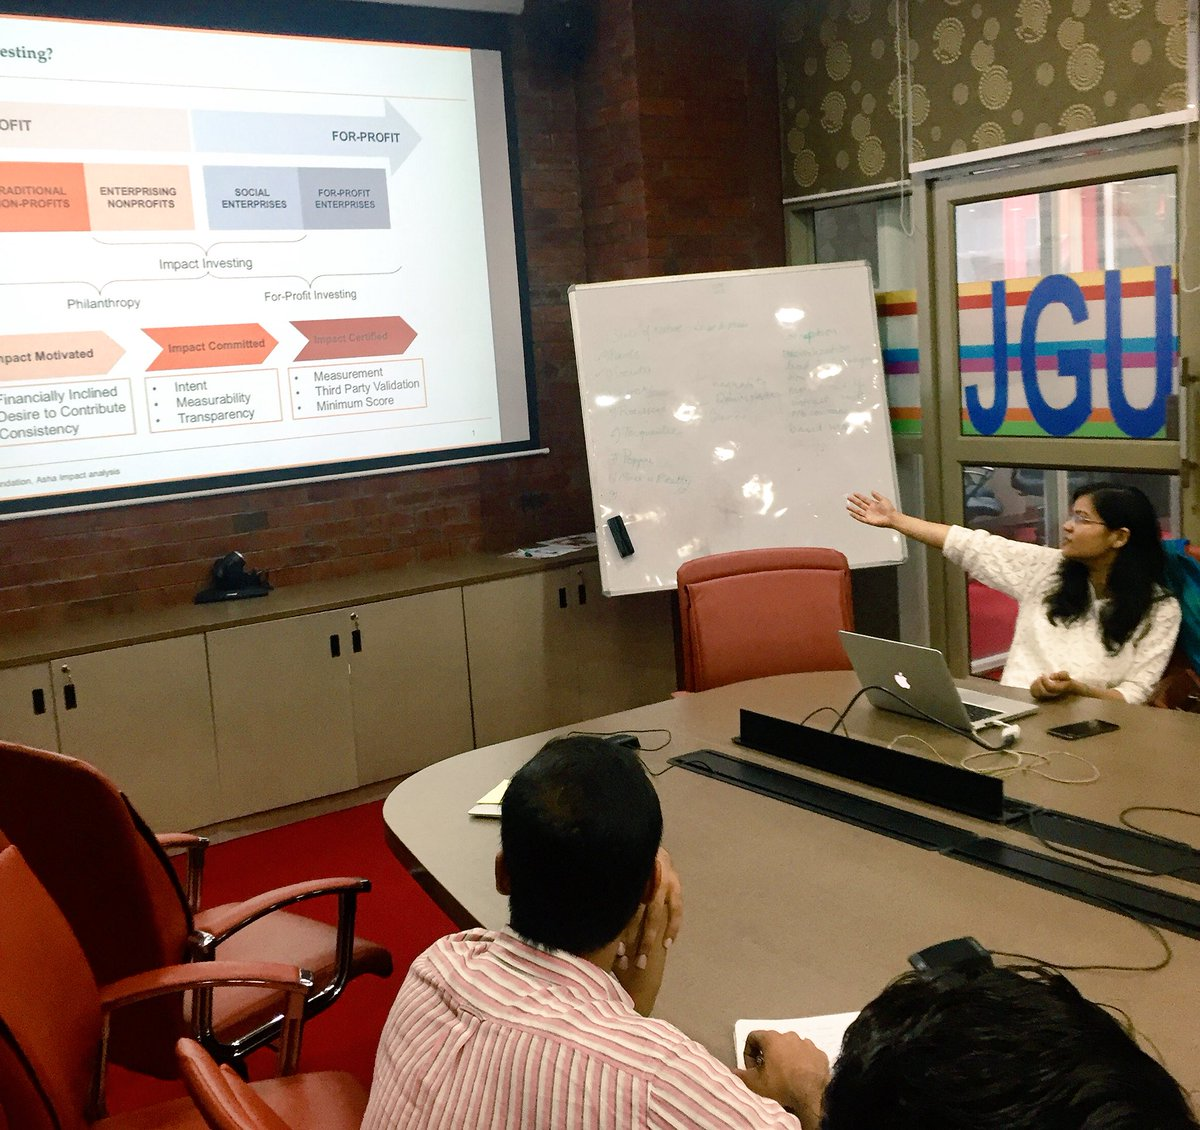 What is impact investing? #TEDi session with Alpana Srivastava from @ashaimpact #impinv <br>http://pic.twitter.com/c9deryZik2